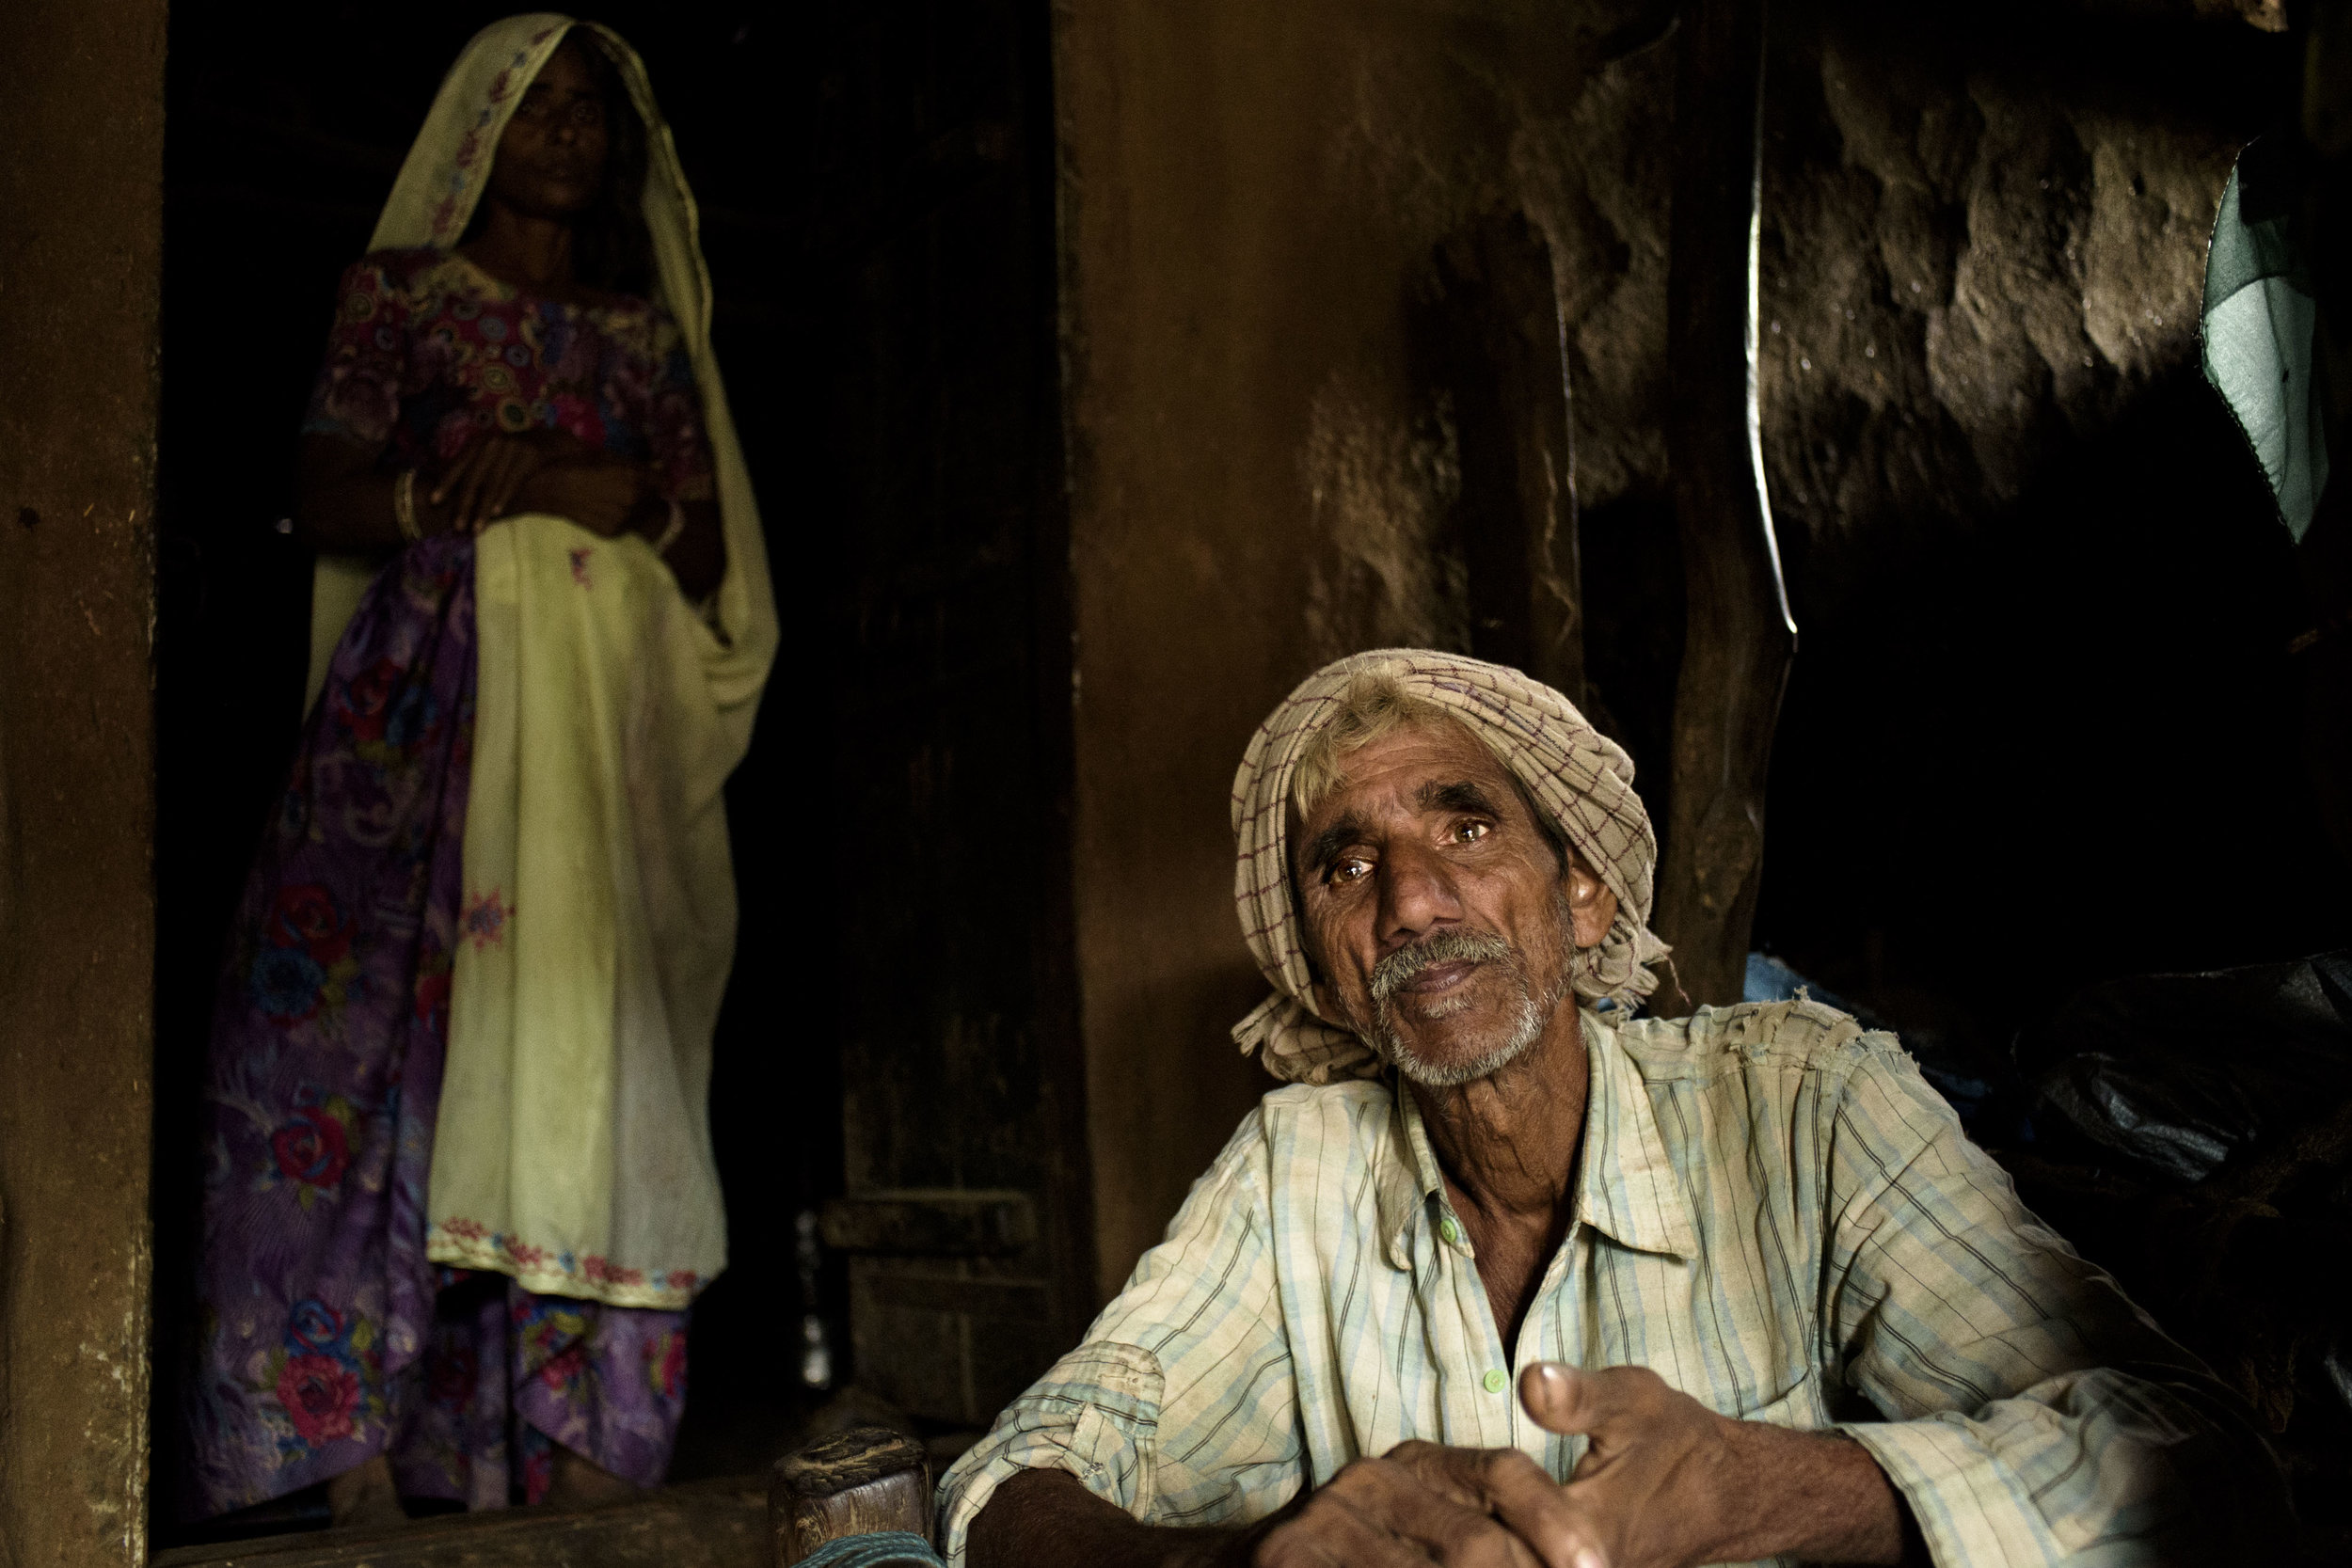 Bhura sits in the courtyard of his house while he explains how the Mukhyamantri Nishulk Dawa Yojna has benefitted him. Bhura lives below the poverty line. With very little income to support a family, he feels relieved that the diagnosis and medicine are free of cost.